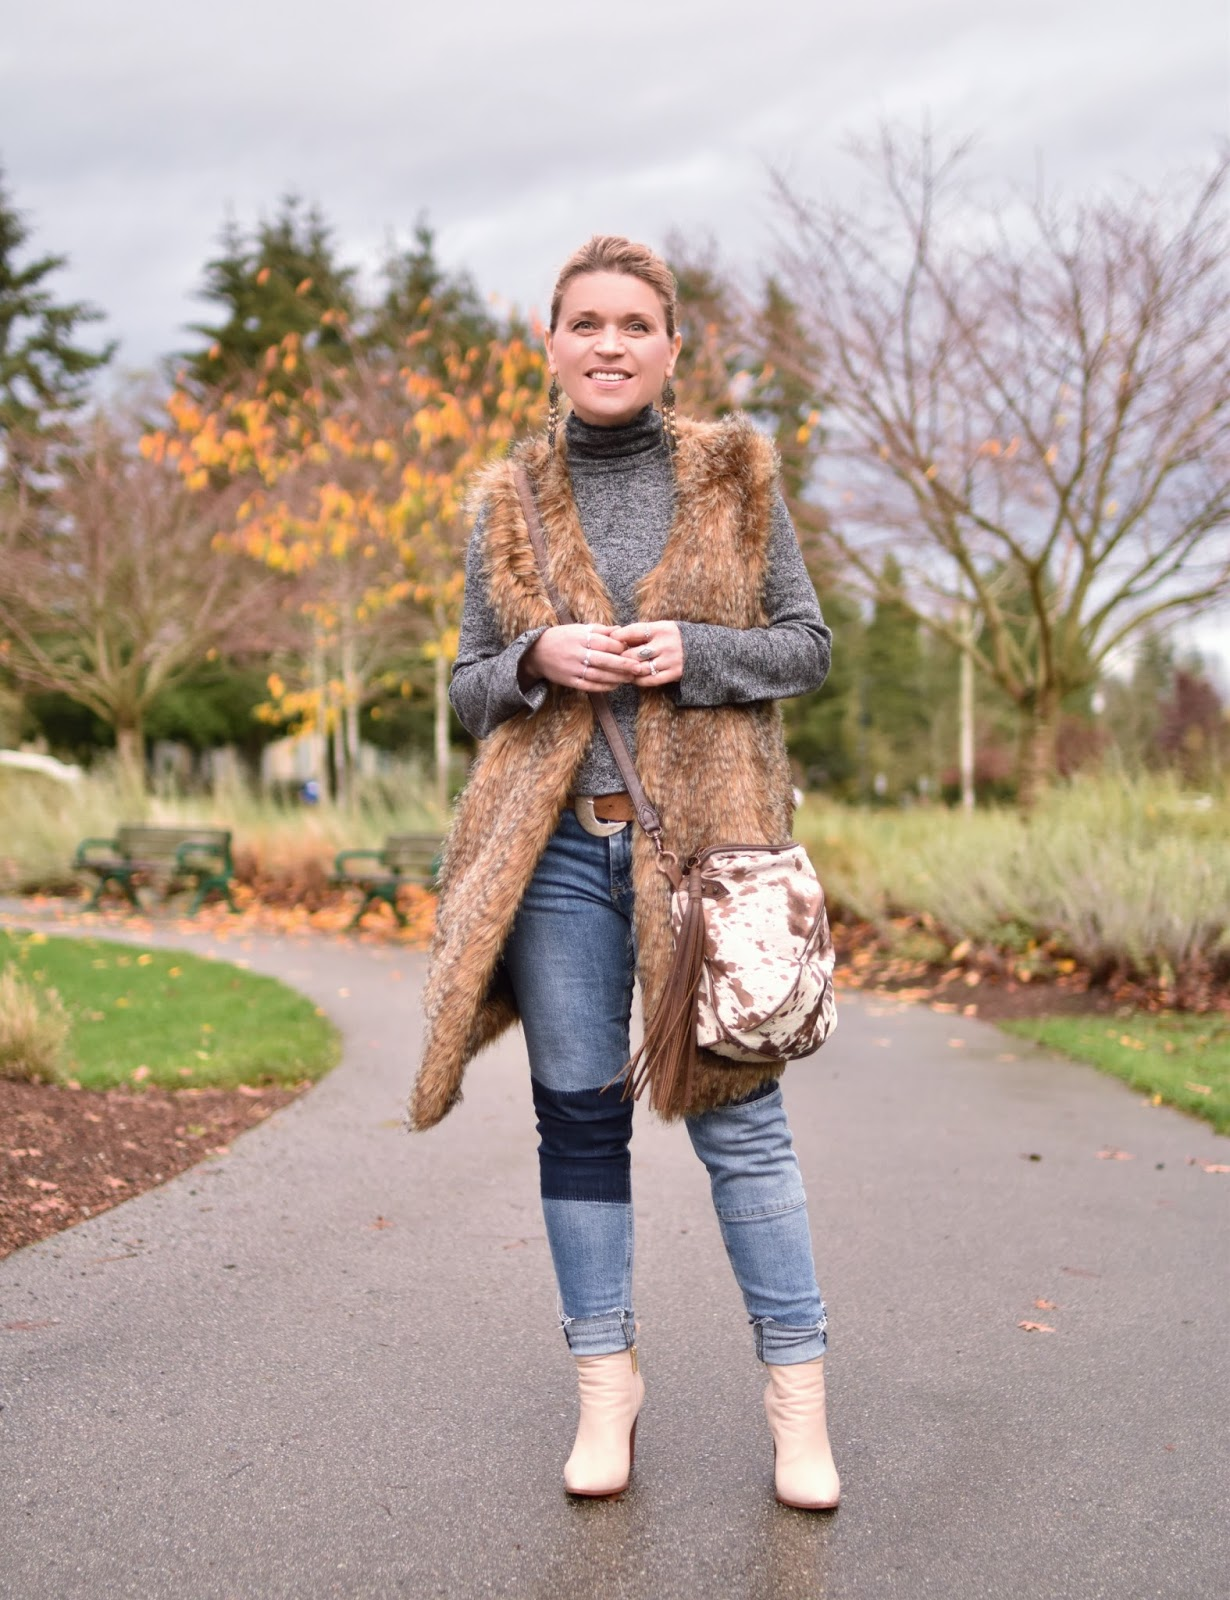 Monika Faulkner outfit inspiration - styling a faux-fur vest with a turtleneck sweater, patchwork skinny jeans, and Ivory booties